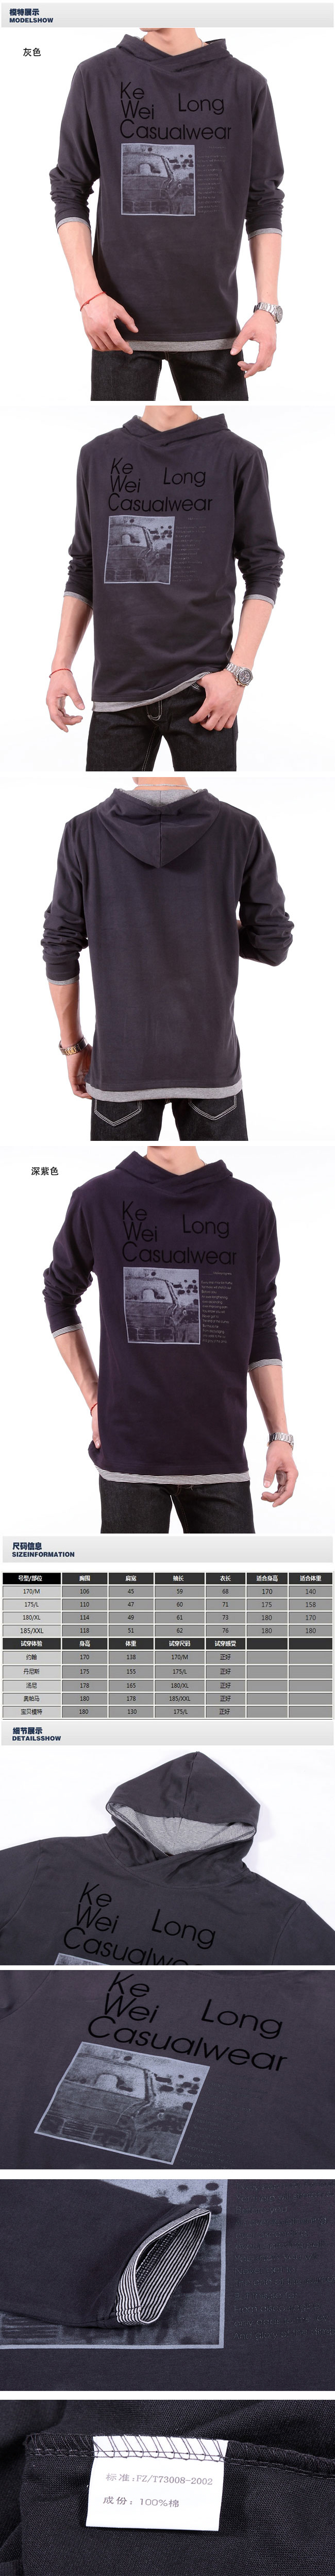 hanris Han Rui 2013 autumn new men's long-sleeved T-shirt men t-shirt big yards loose round neck T-shirt men's bottoming shirt purple 459185 (loose version of the type)